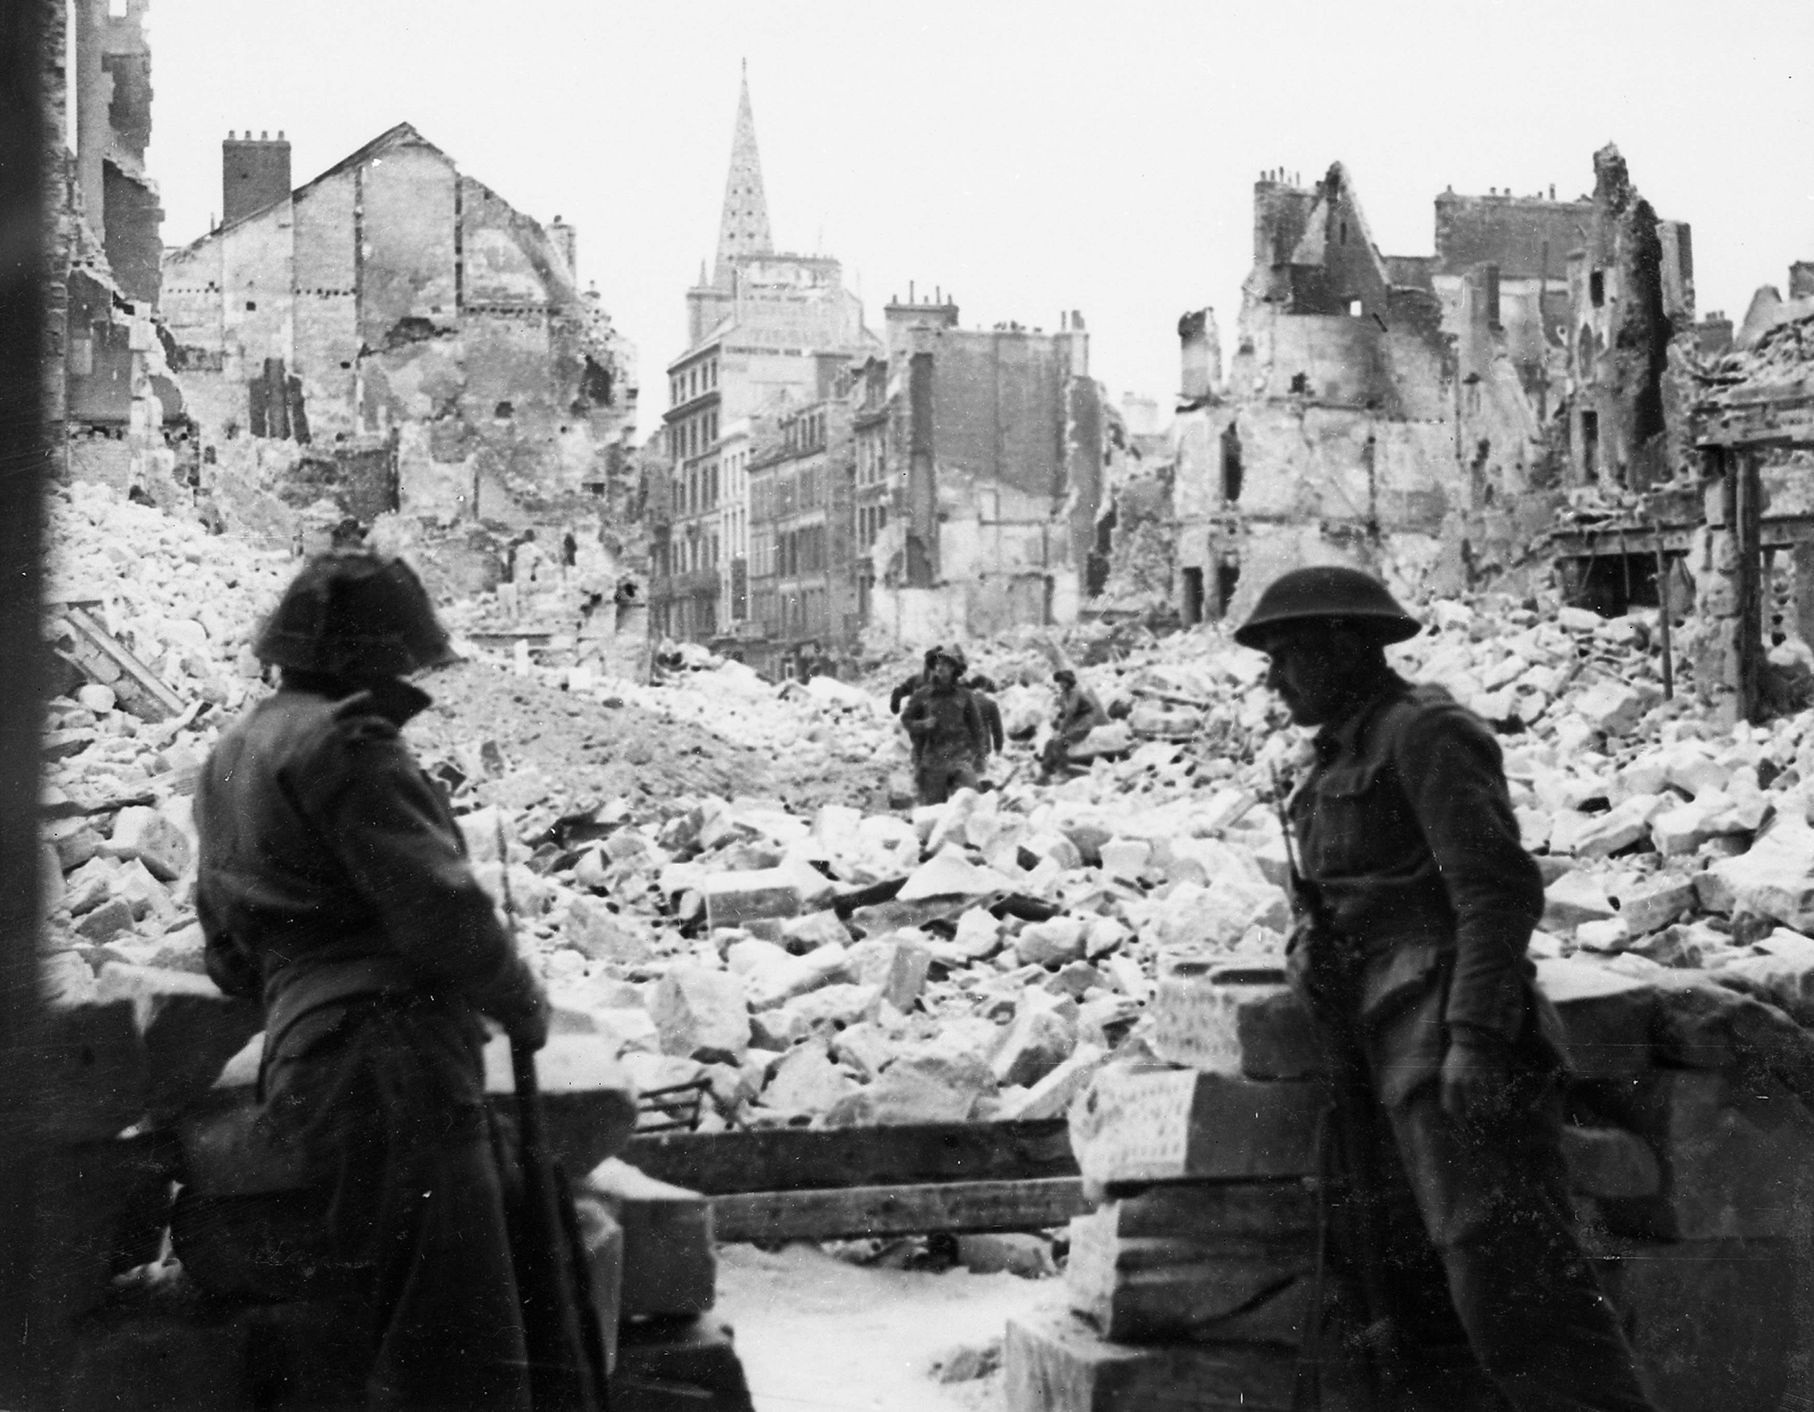 British troops keep watch across a destroyed square from a doorway of a cathedral after finally dislodging German forces from Caen